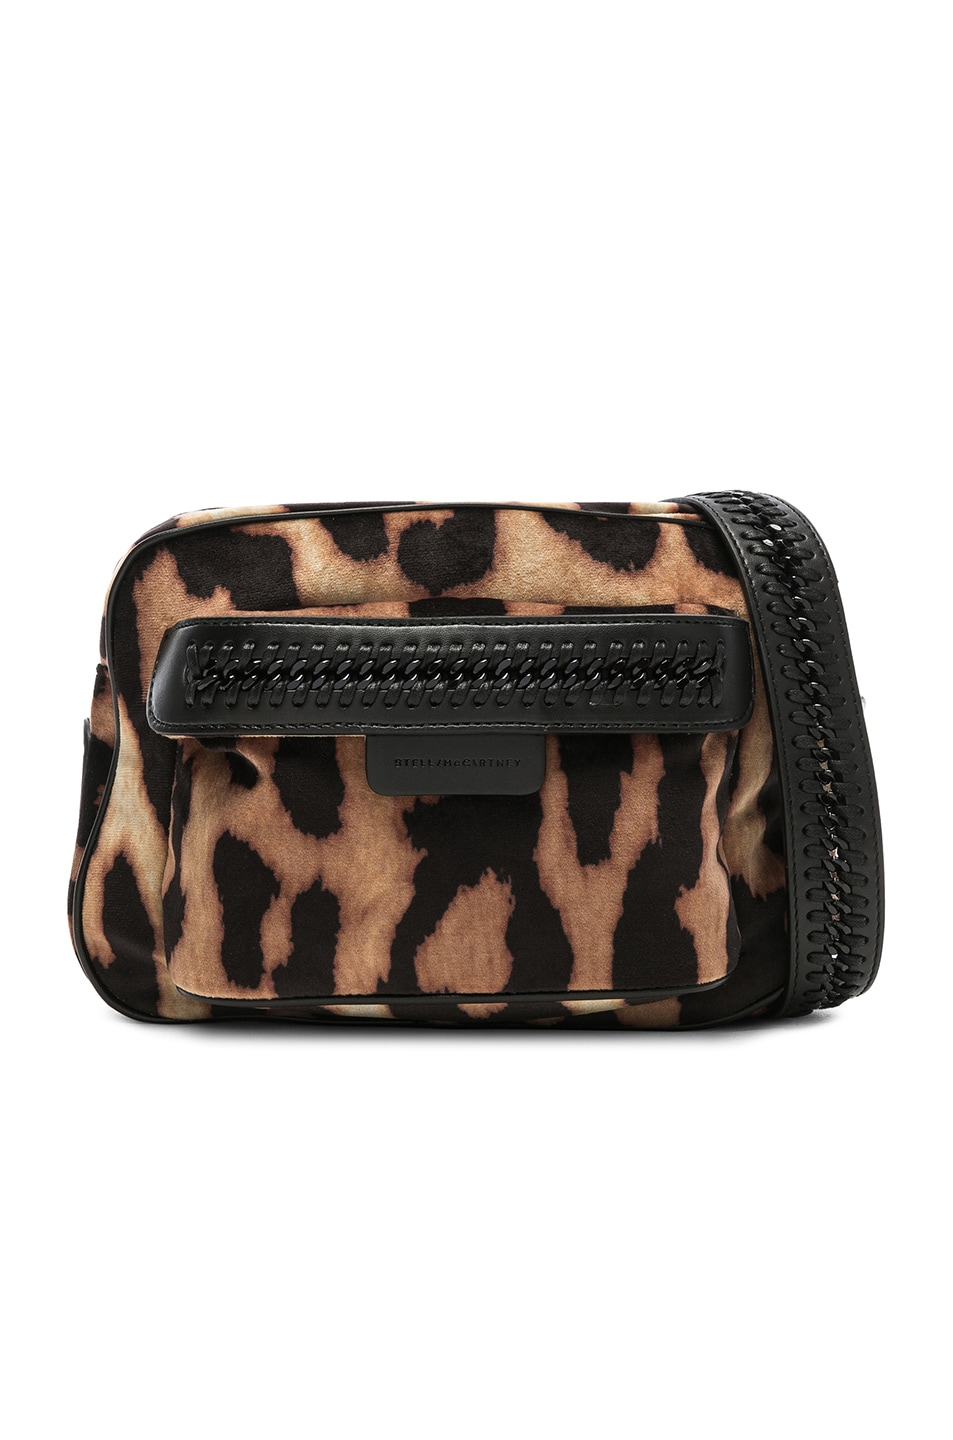 726cbc38d9 Image 1 of Stella McCartney Falabella Go Leopard Print Velvet Camera Bag in  Camel   Black